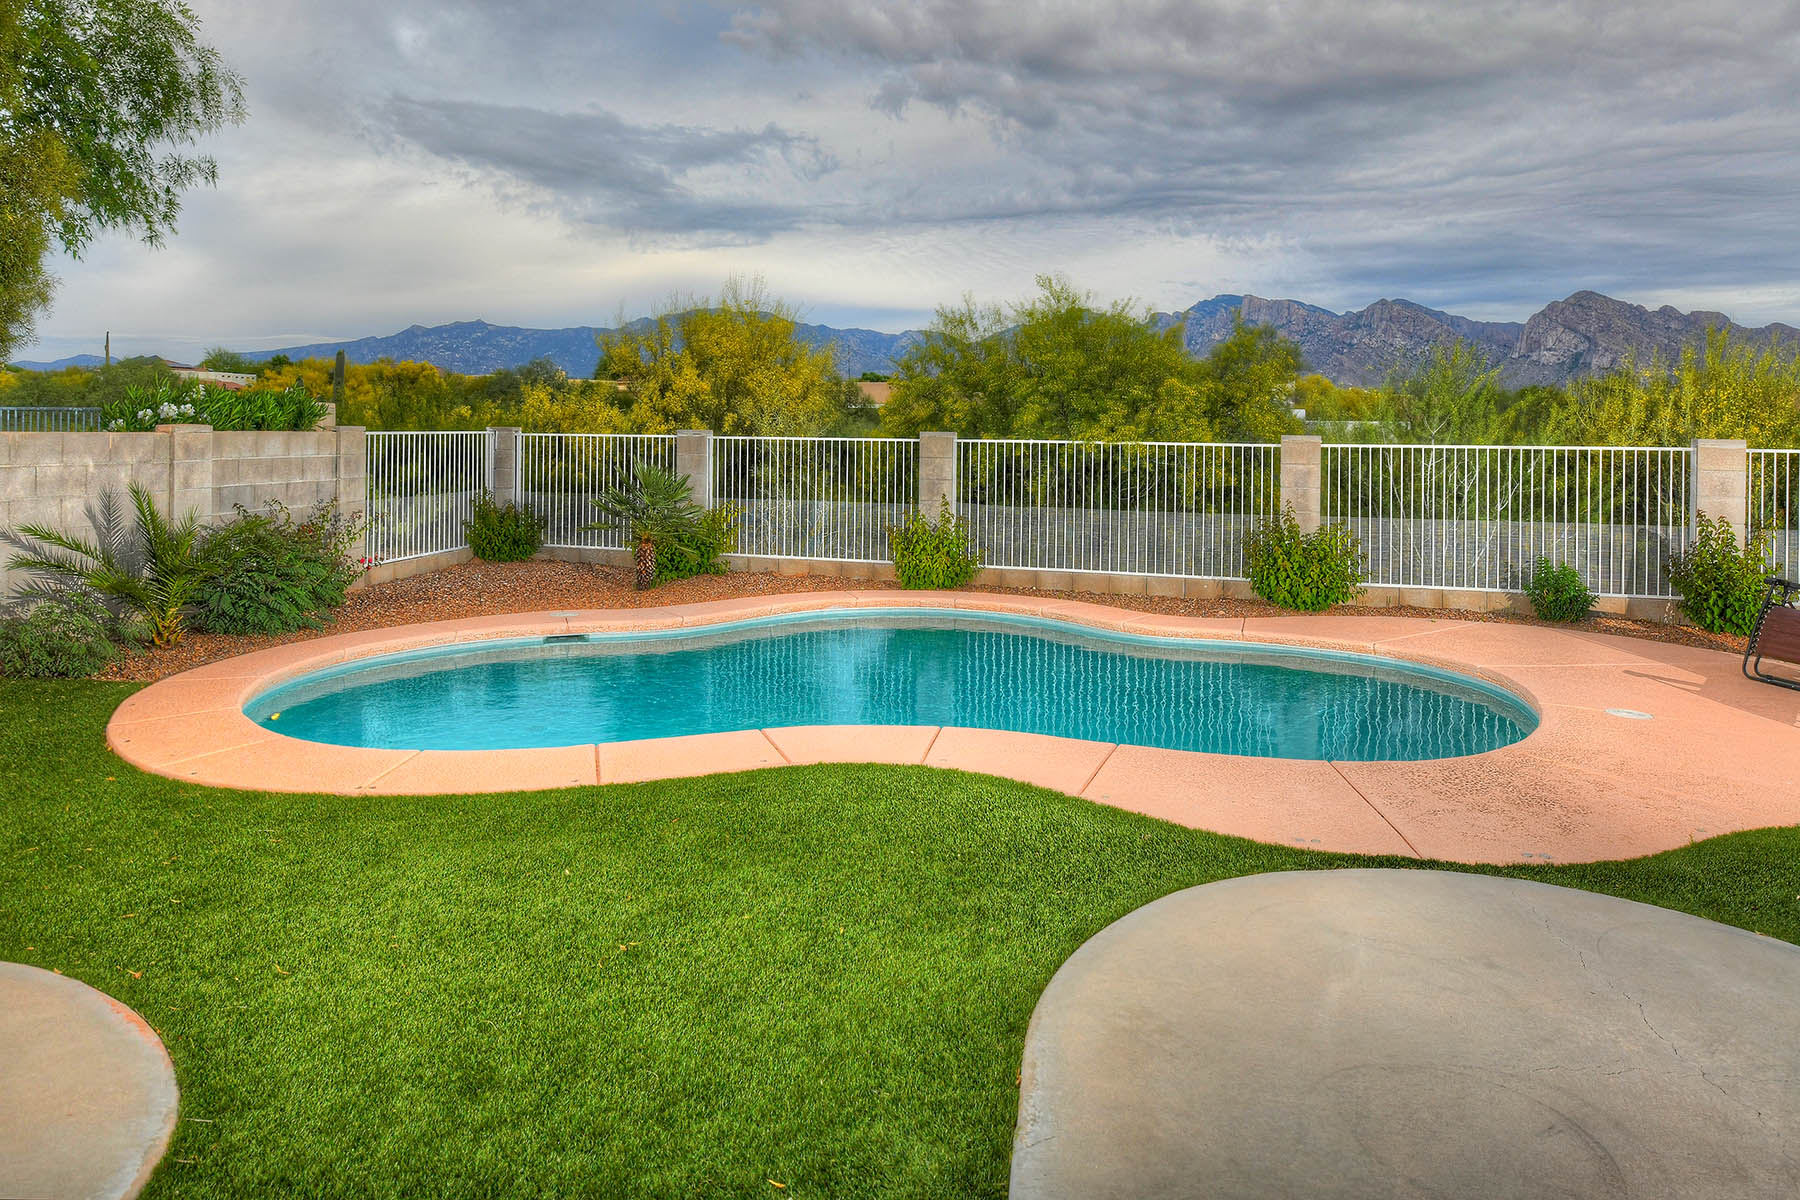 Single Family Homes for Sale at In the Heart of Oro Valley in a Quiet Community 11284 N Cactus Rose Drive Oro Valley, Arizona 85737 United States